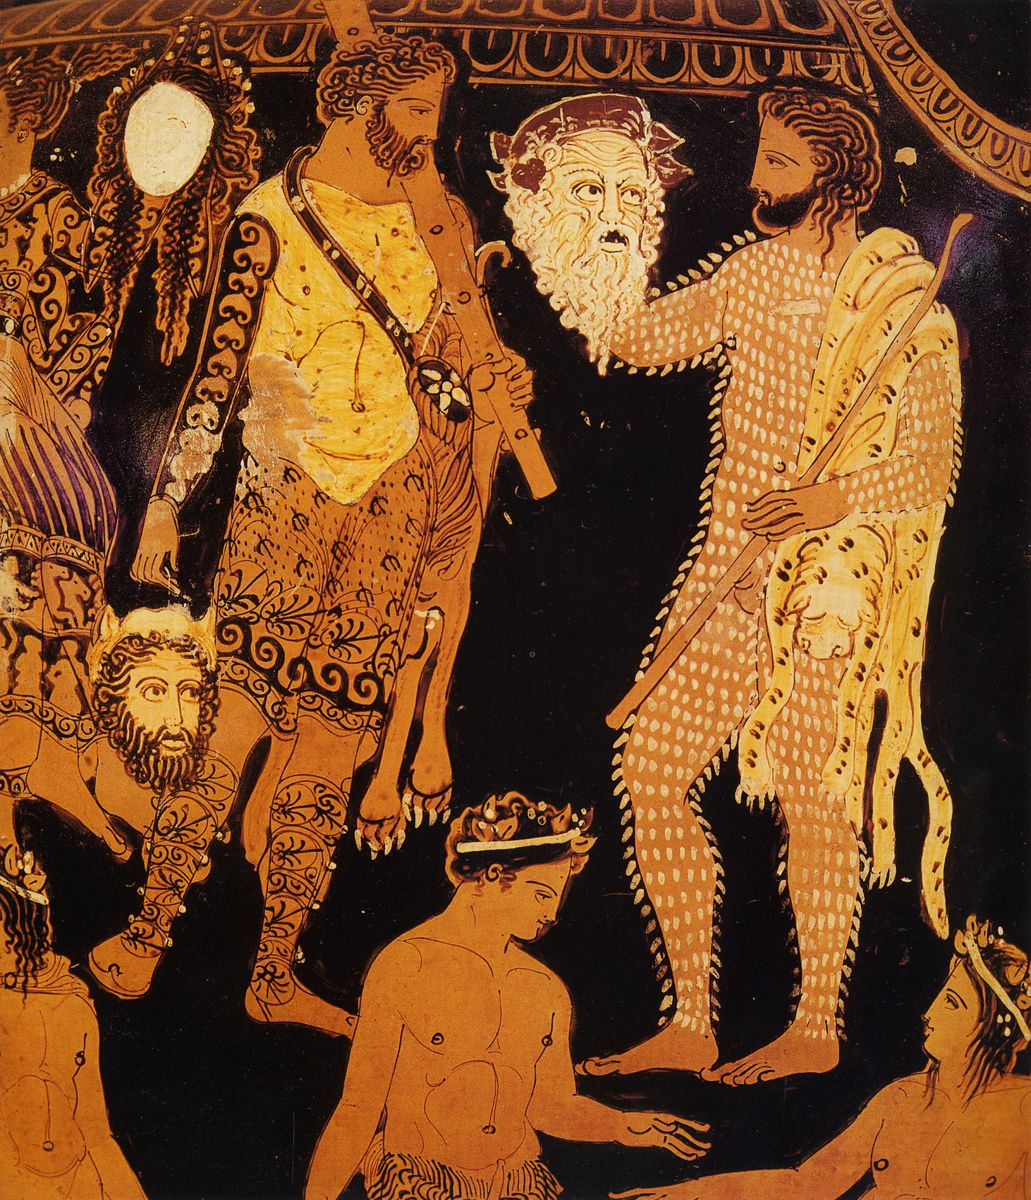 the art of ancient greek theatre Share this:ancientpagescom - what did ancient greek costumes, masks and theatre look like theater played an important role in ancient greece history of the greek theatre started with festivals held in honor of their gods honoring their gods.